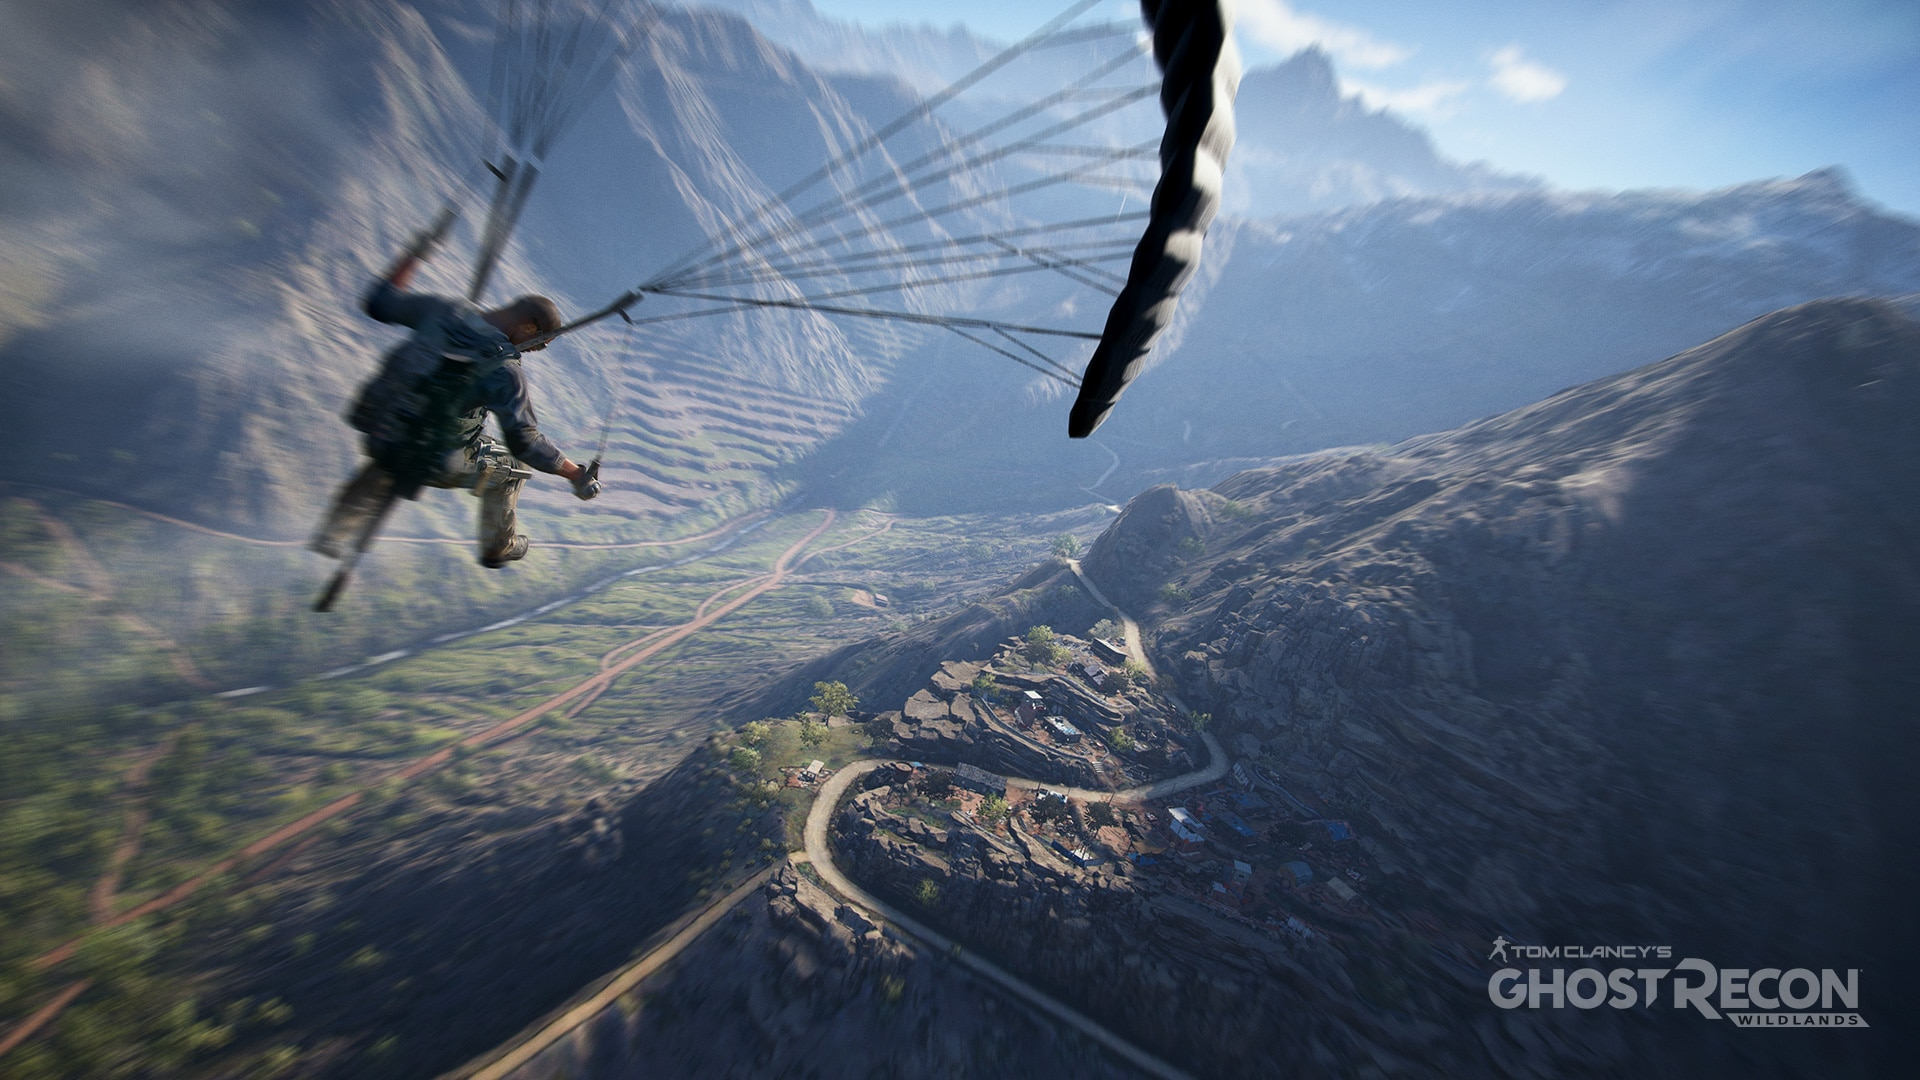 [2017-02-16] Ghost Recon Open Beta announce GRW_SCREENSHOT_E3_2016_11_HD_LOGO.jpg